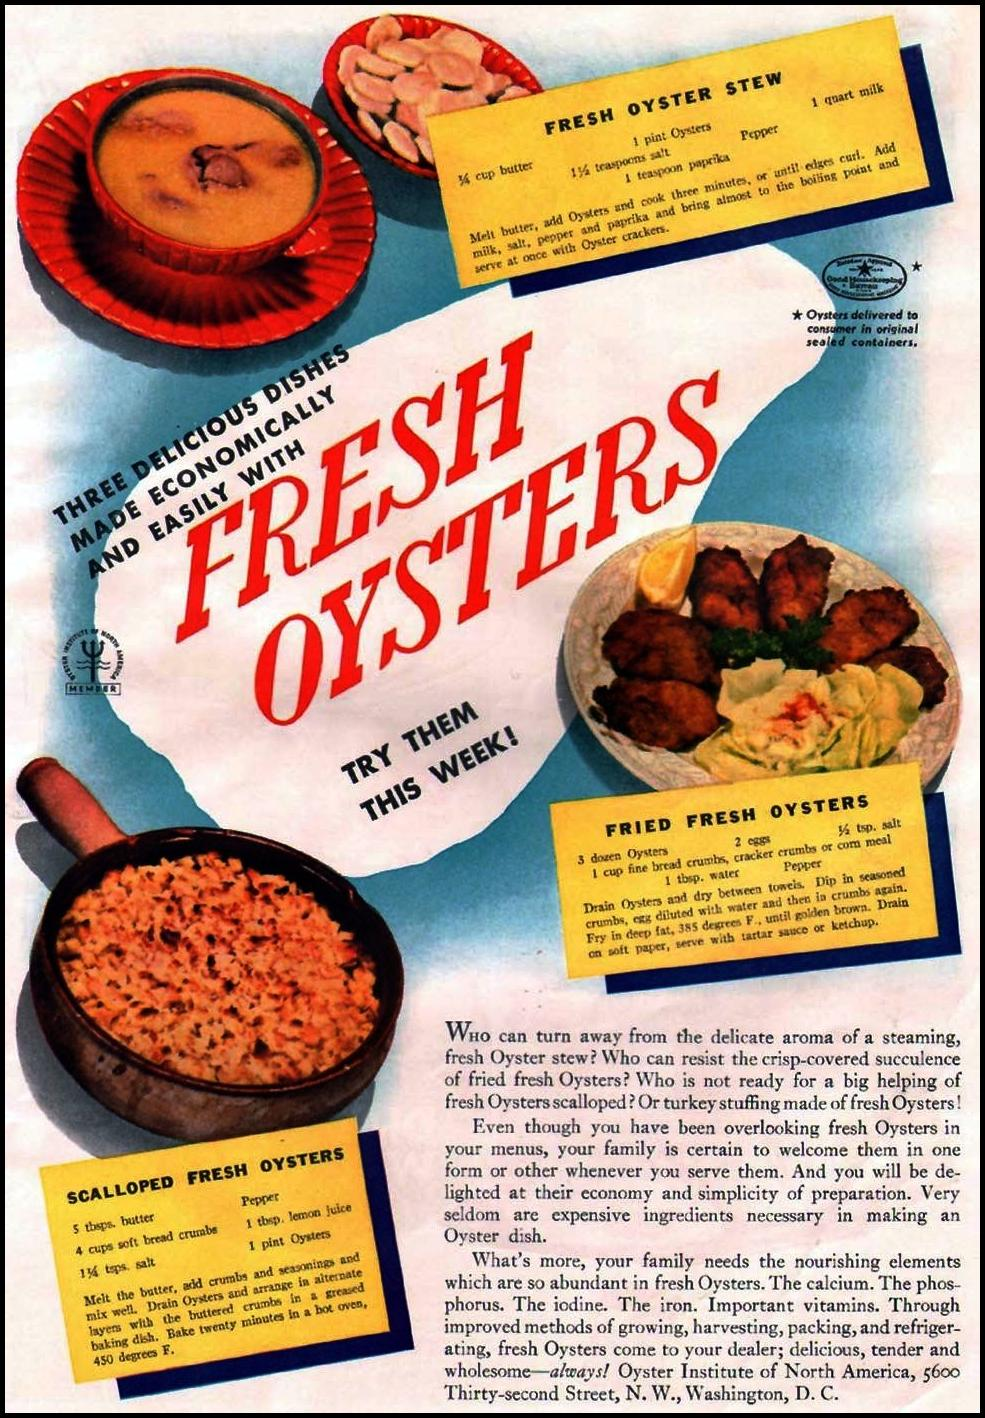 FRESH OYSTERS